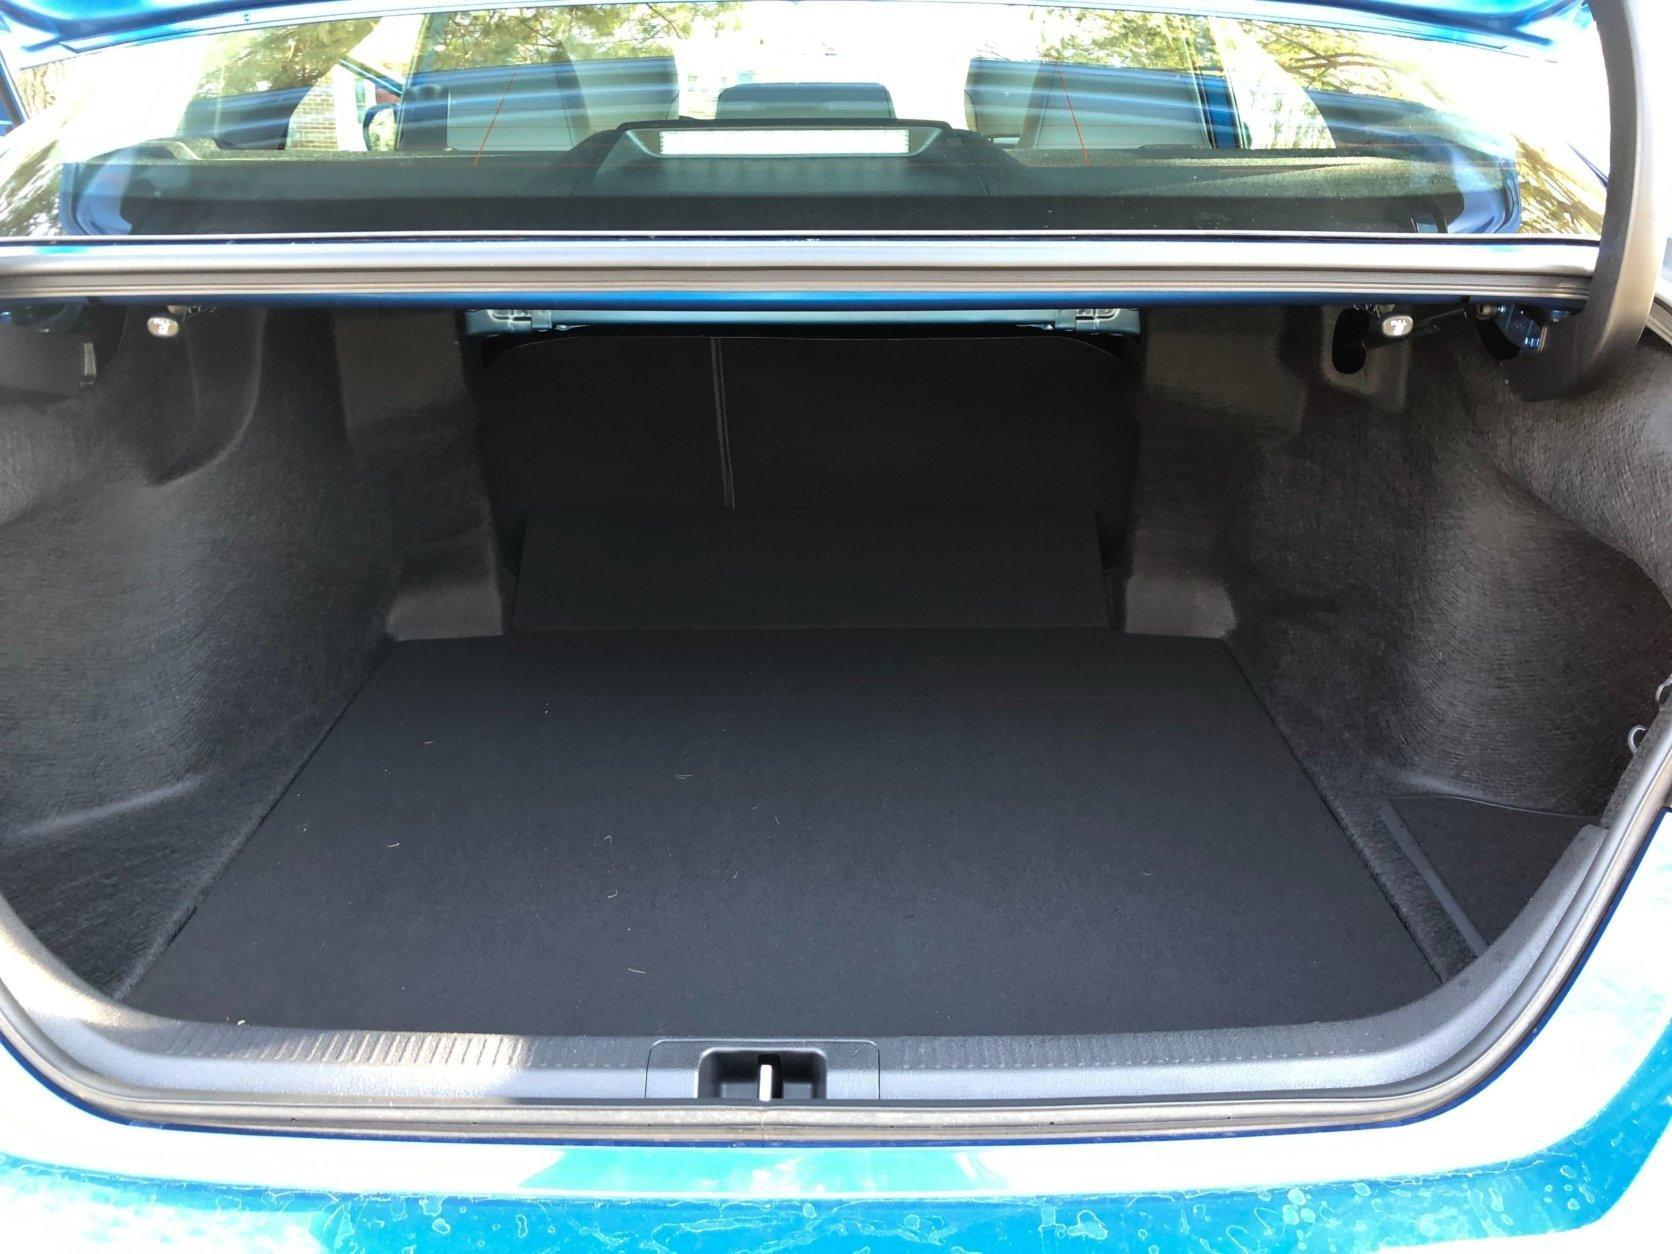 Trunk space in the 2019 Camry